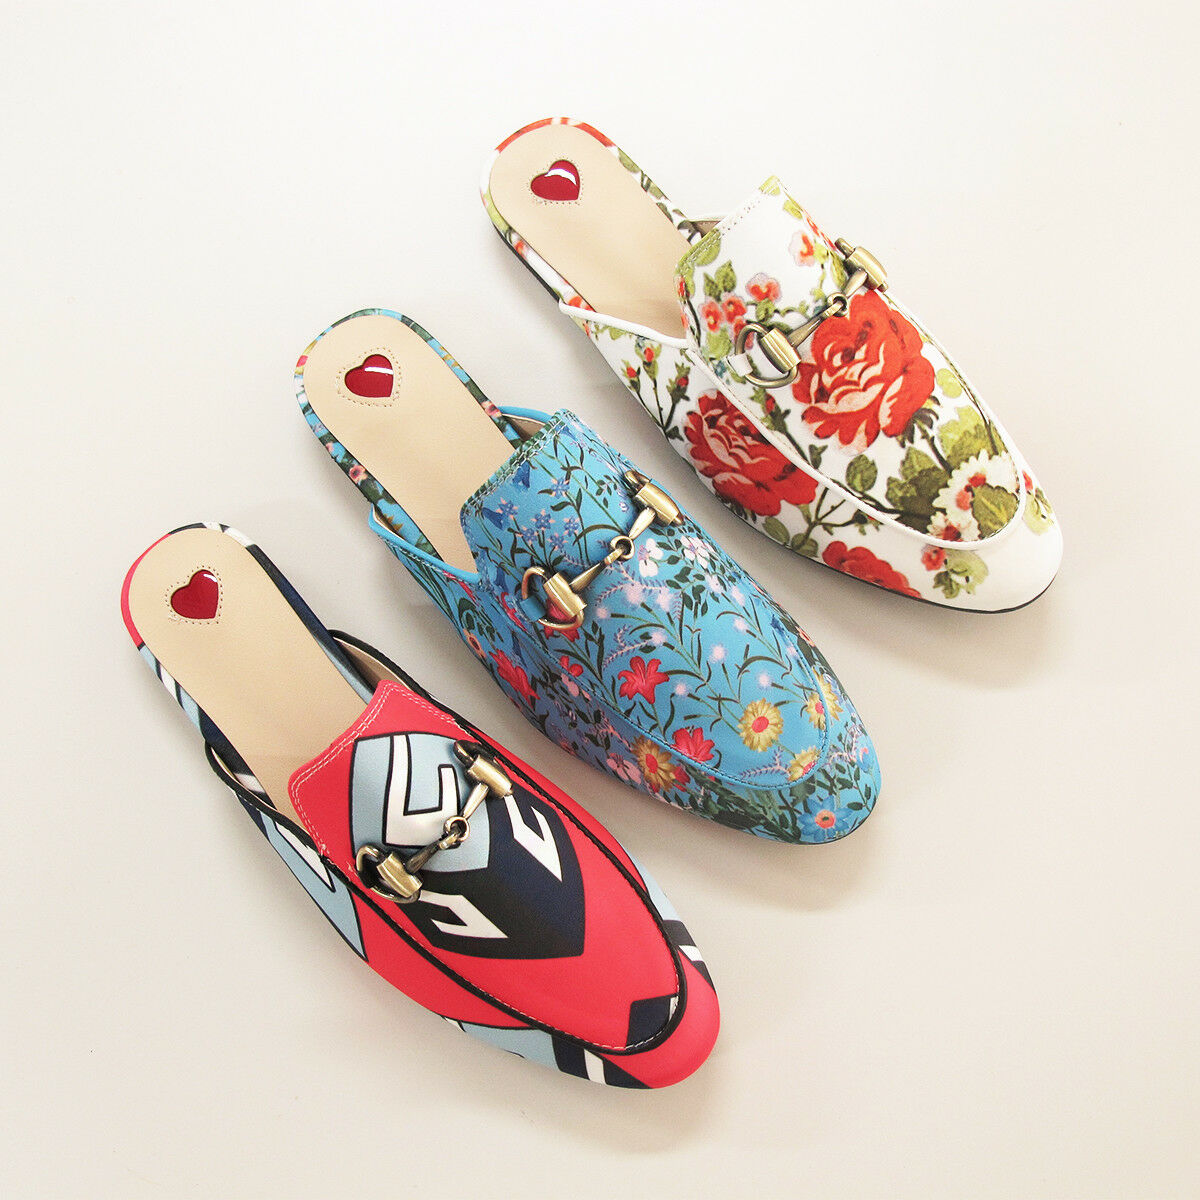 Horsebit Floral / Geometric Printed Slippers Princetown Slide Backless Loafers Slippers Printed 4428c7